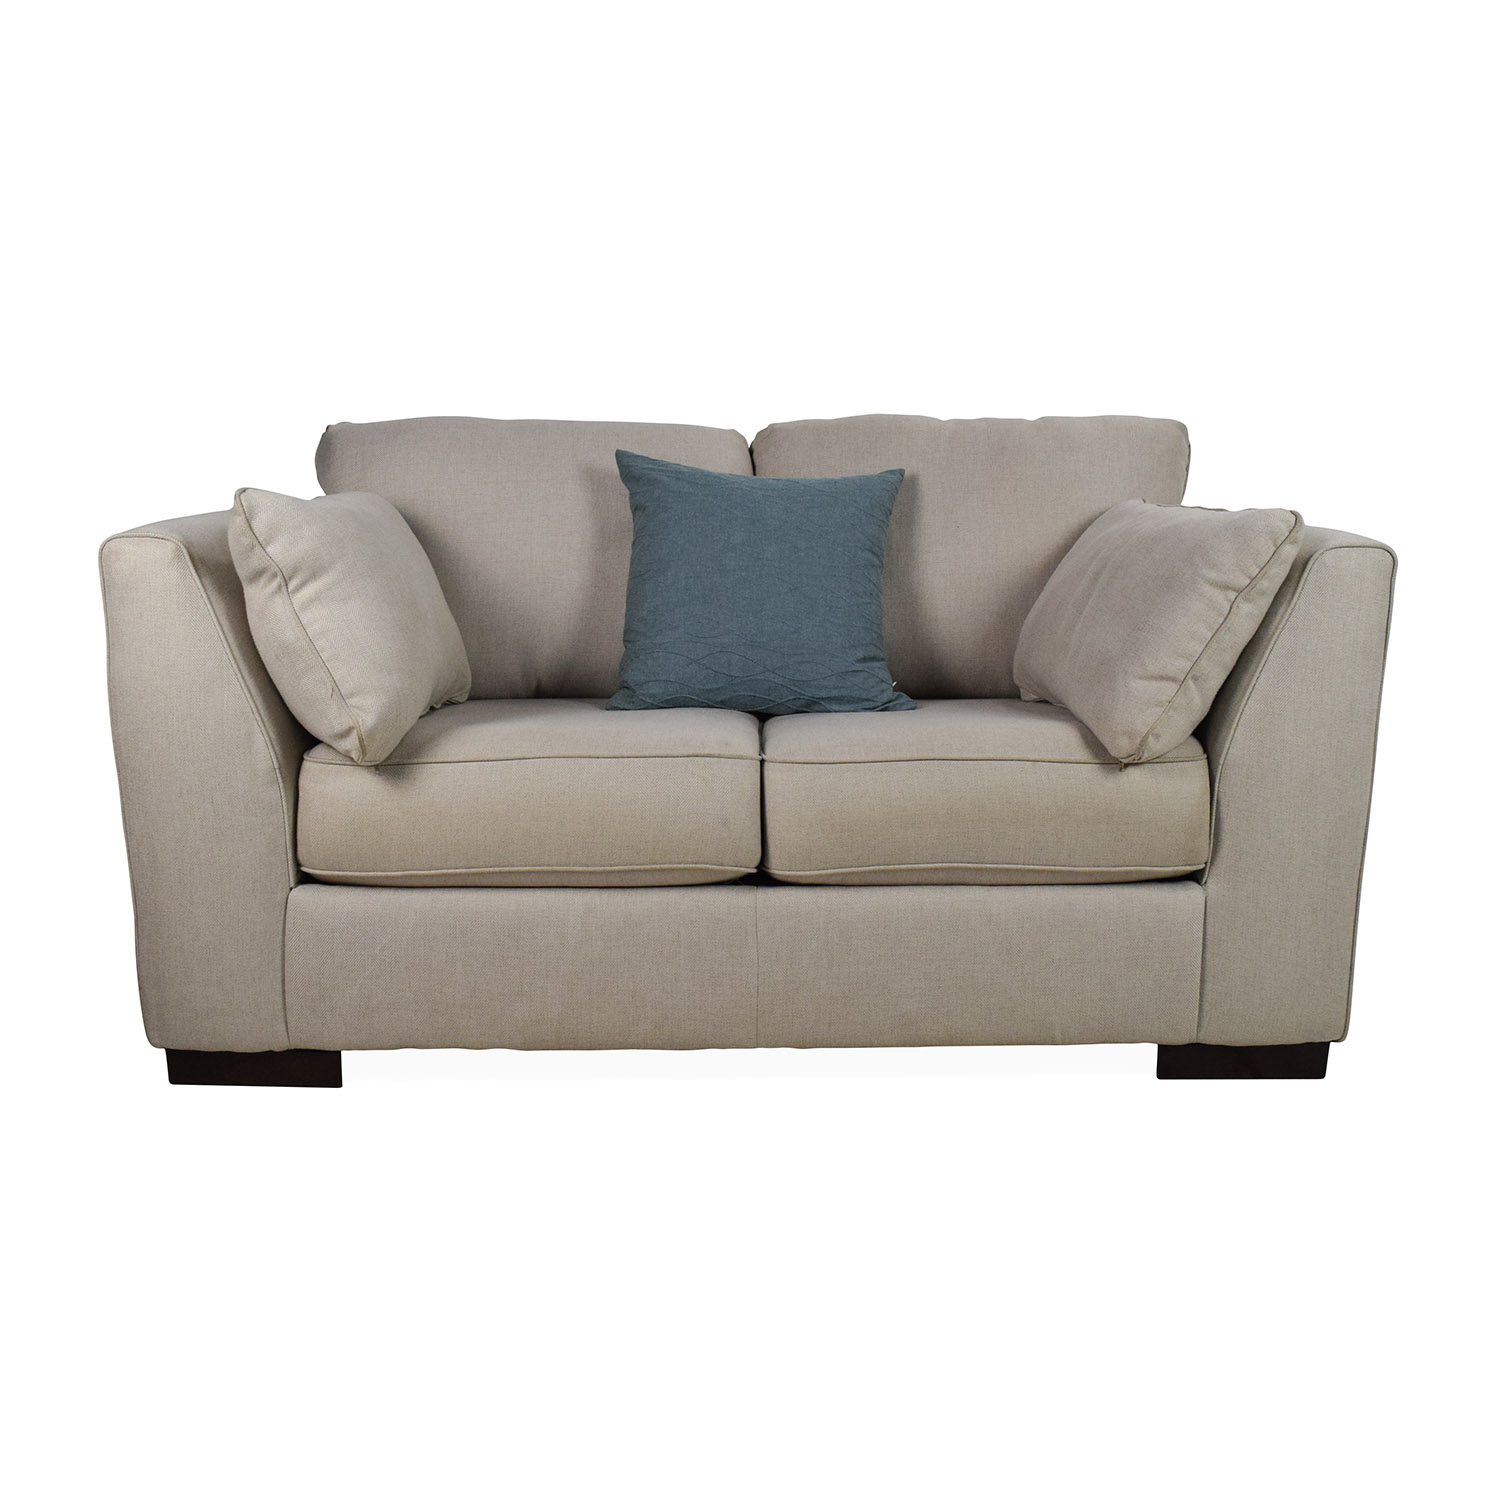 Reclining Loveseat Ashley Furniture Gunsmoke Alzena Power Reclining Loveseat With Console View